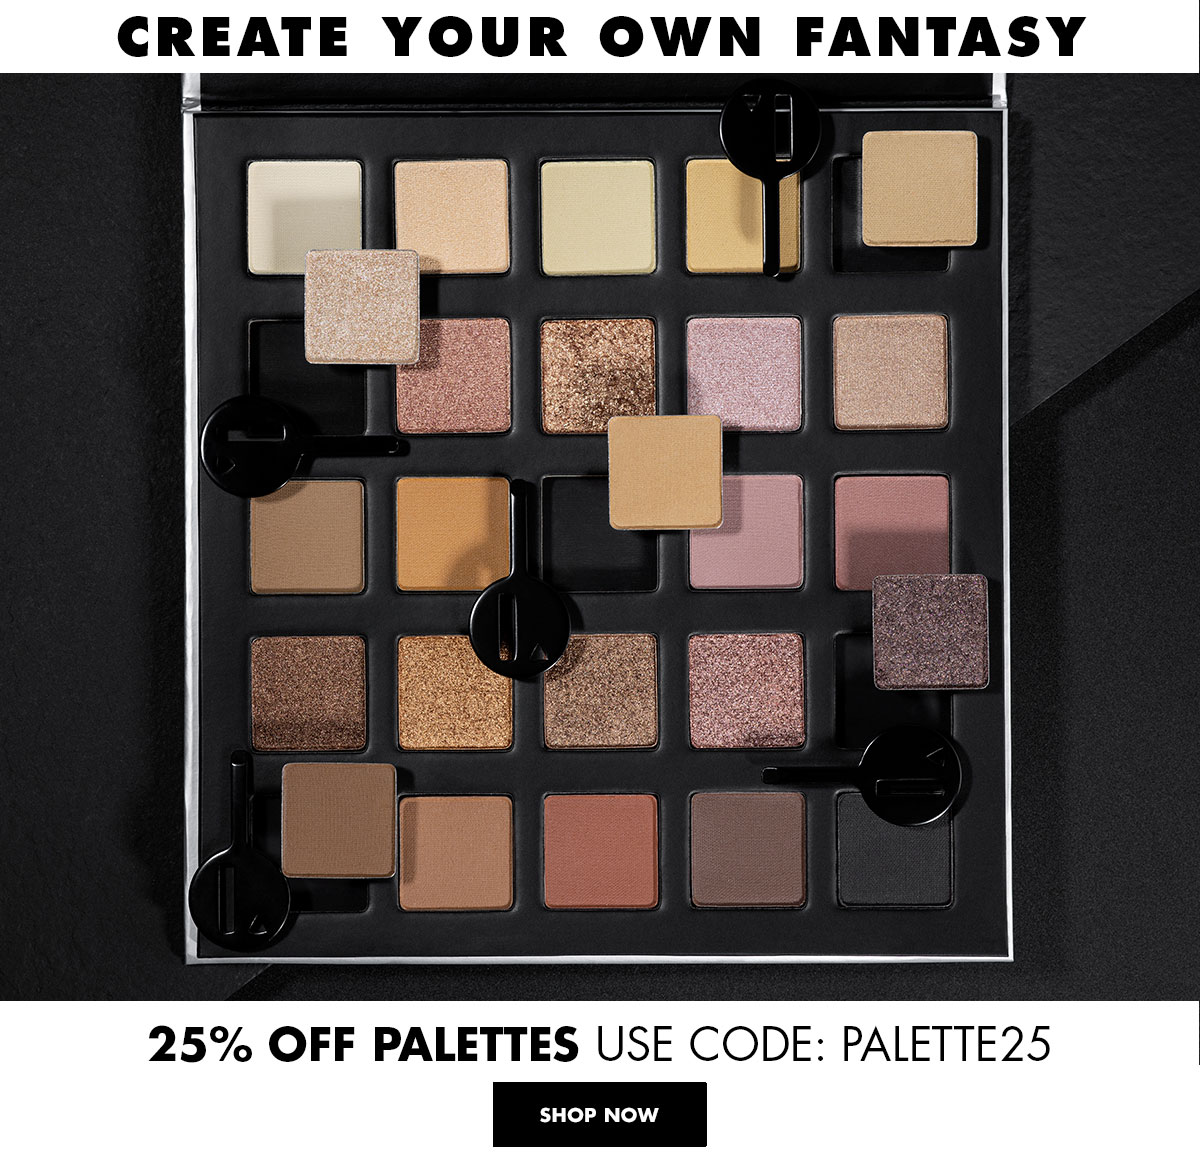 Create your own fantasy - 25% Off Palettes Use Code: PALETTE25   Shop Now   LORAC   Products front facing with black background